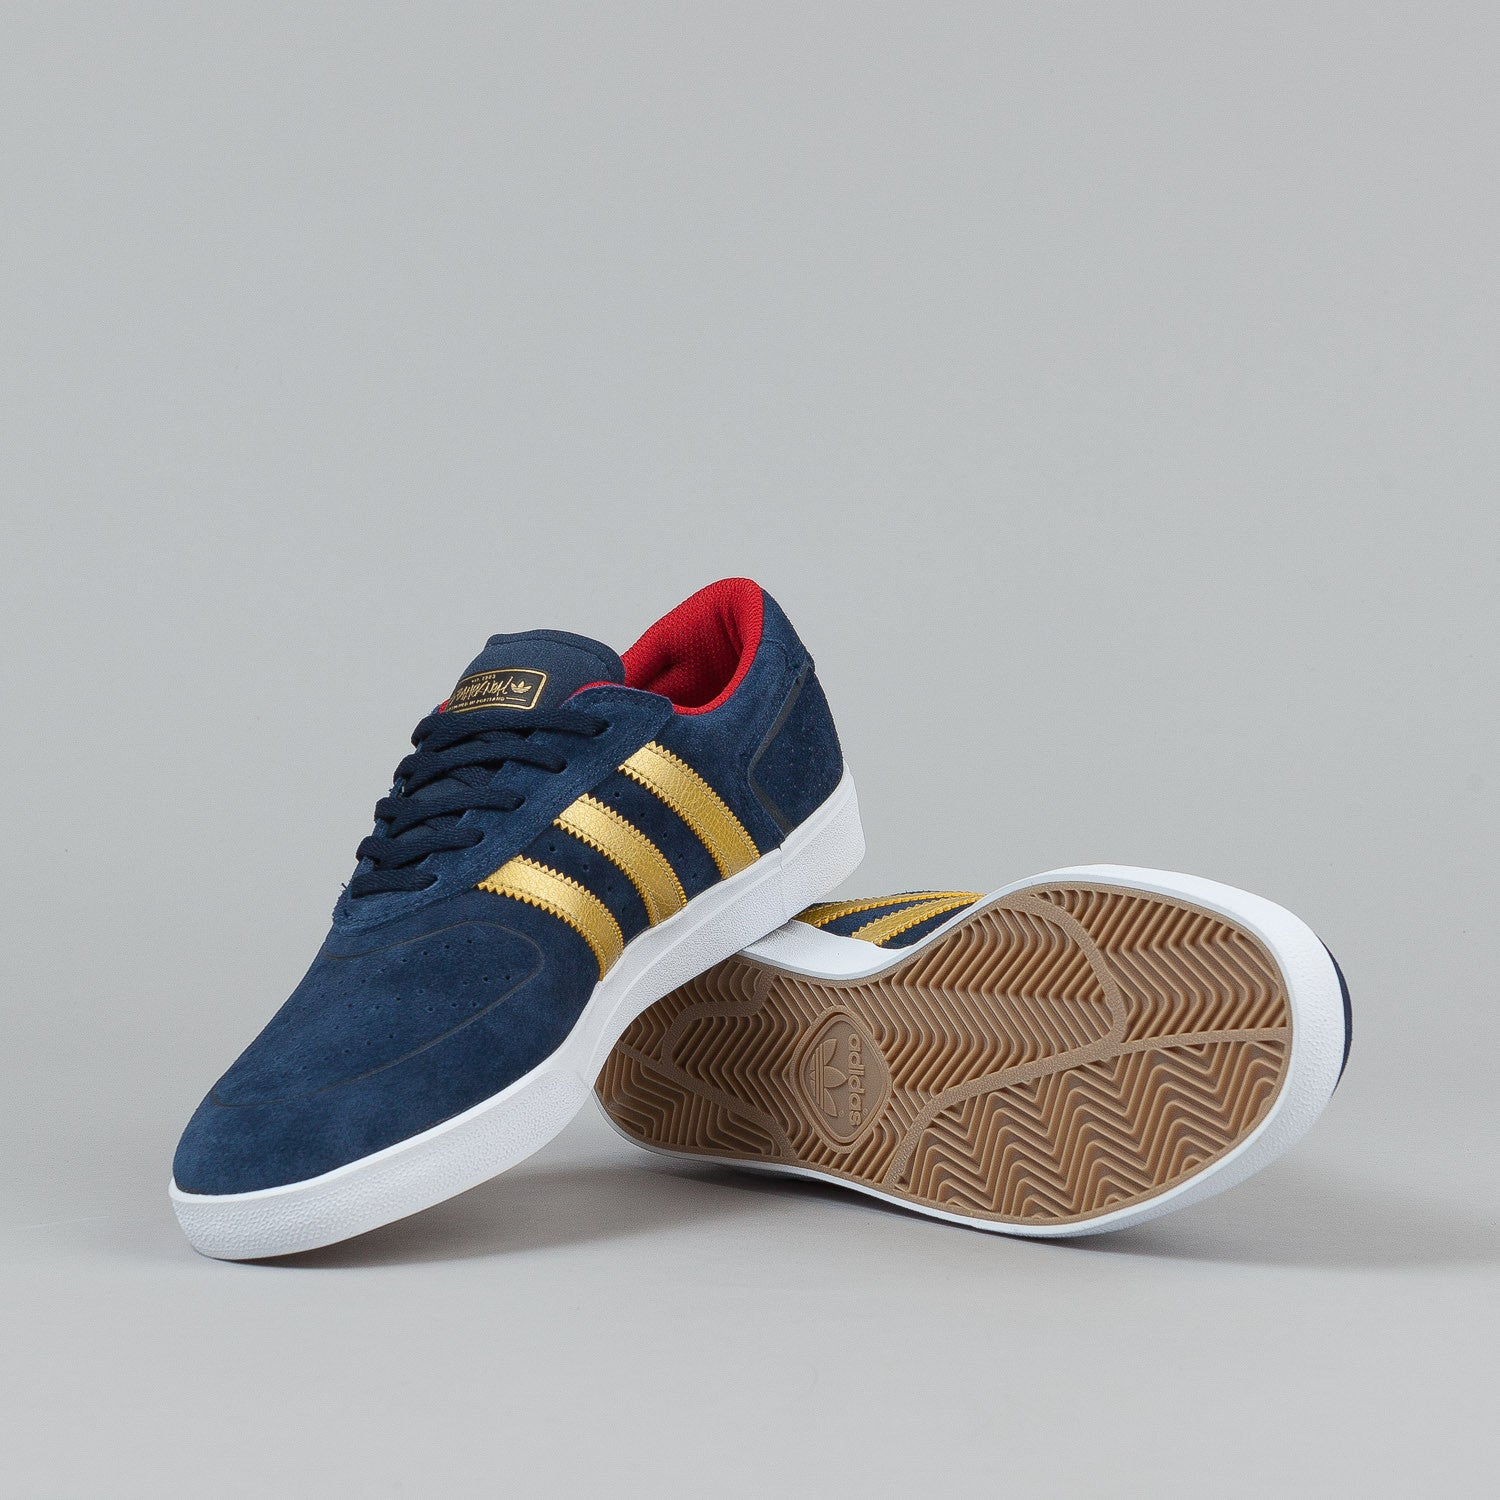 Adidas Silas Vulc Shoes - Collegiate Navy / Gold Metallic / Scarlet